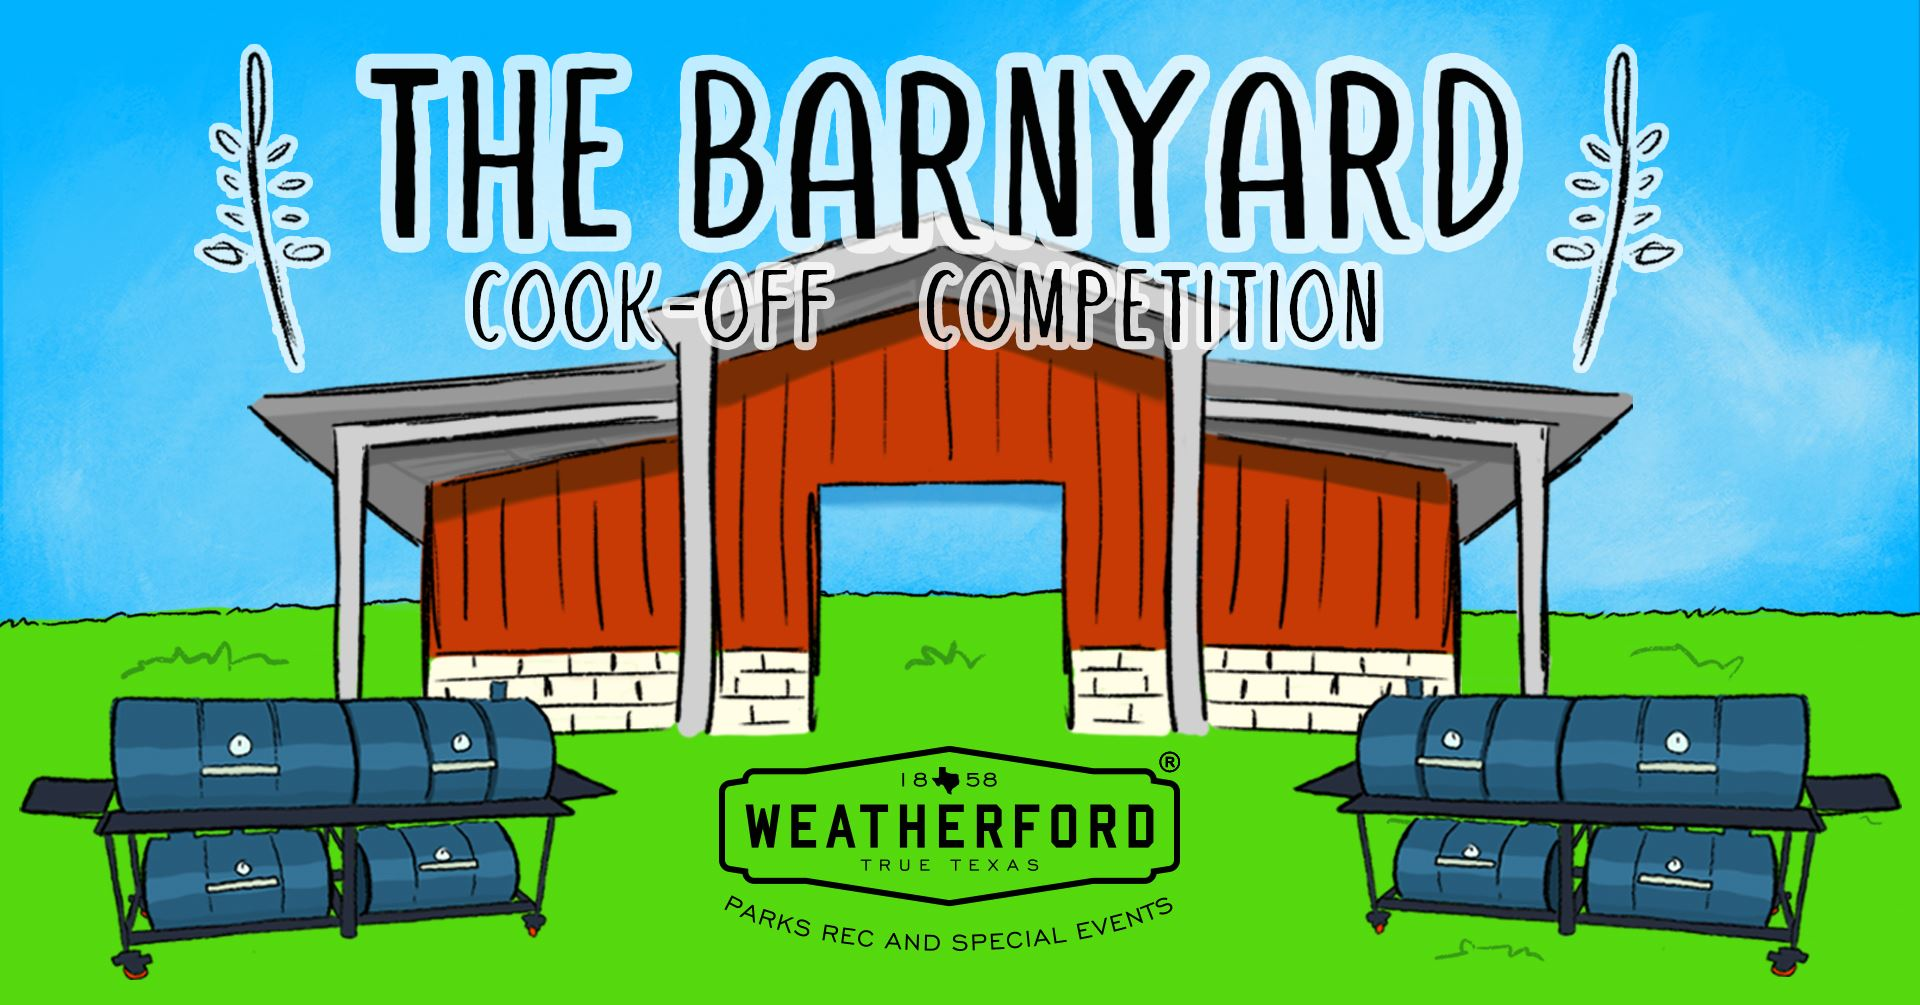 The Barnyard Facebook Image